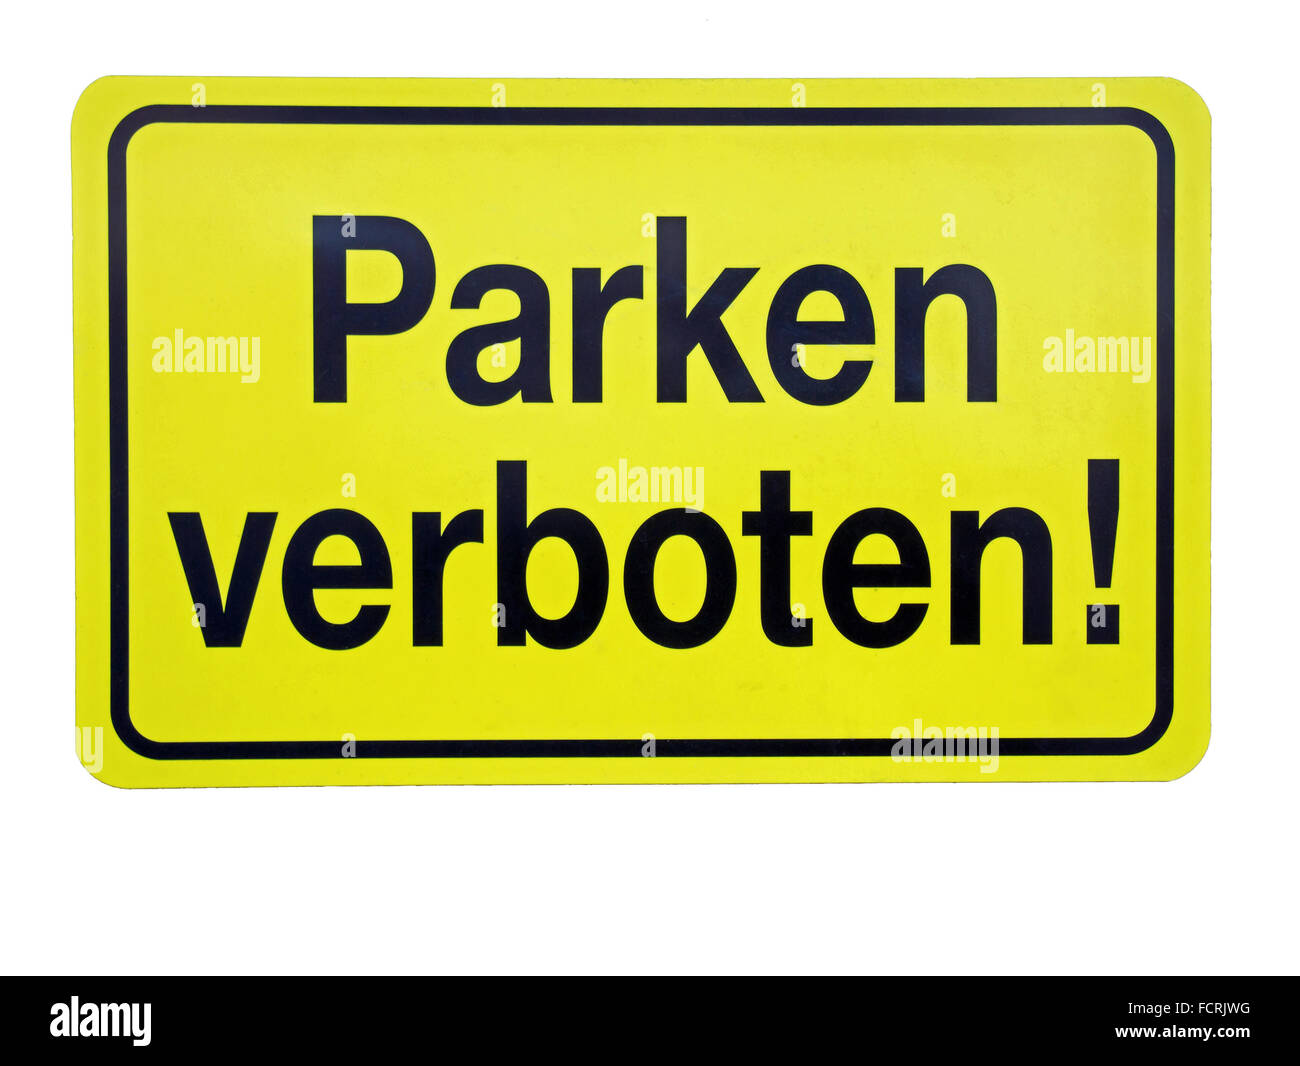 no-parking zone, traffic sign, isolated on white background - Stock Image